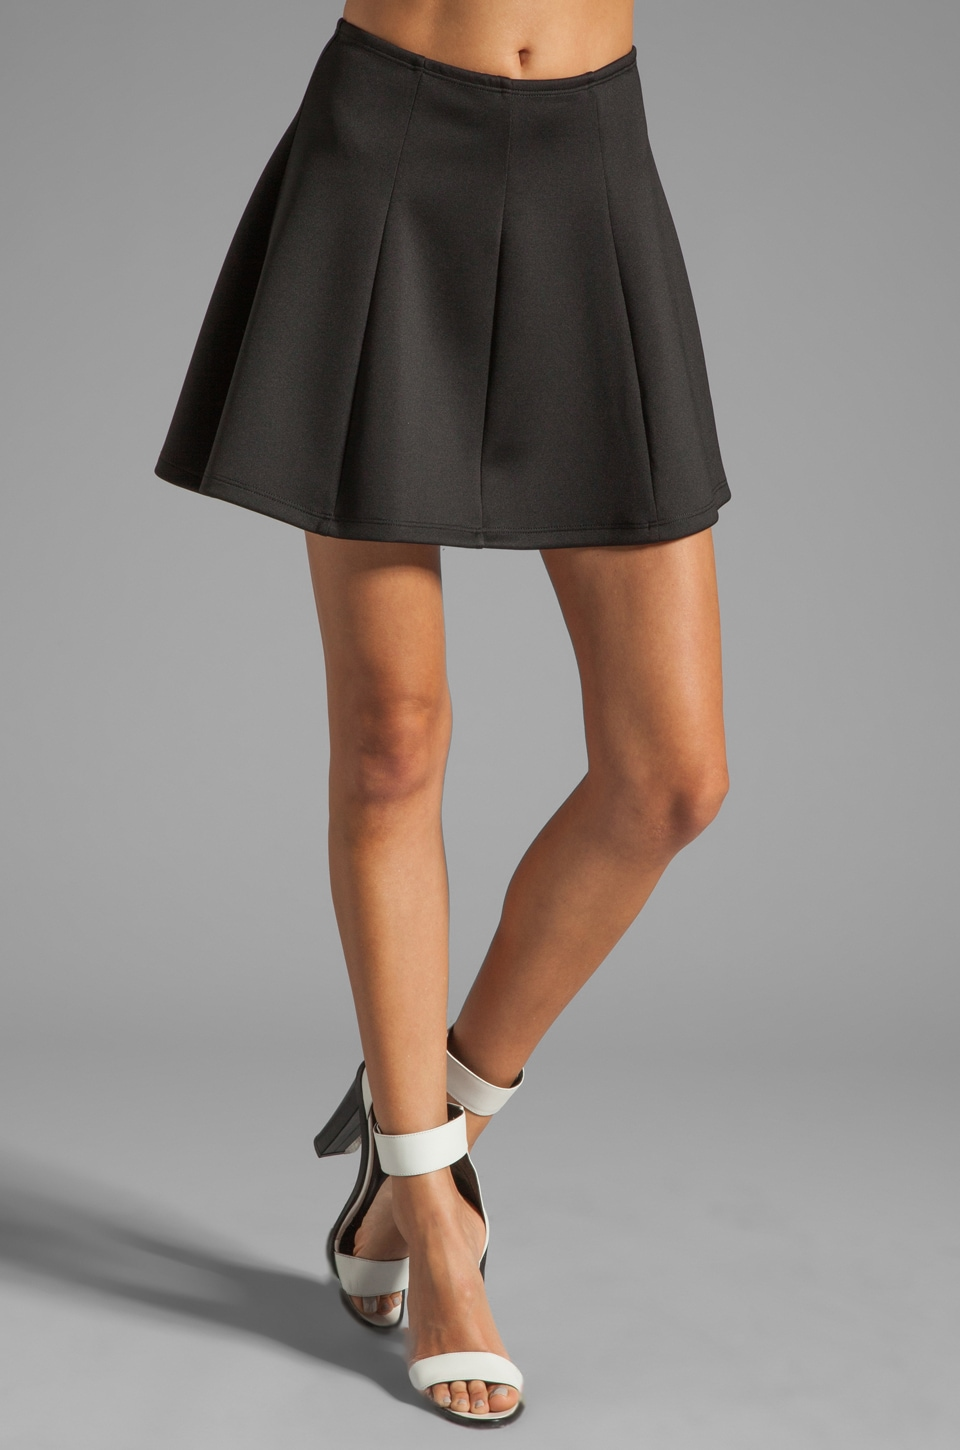 Boulee Luke Skirt in Black